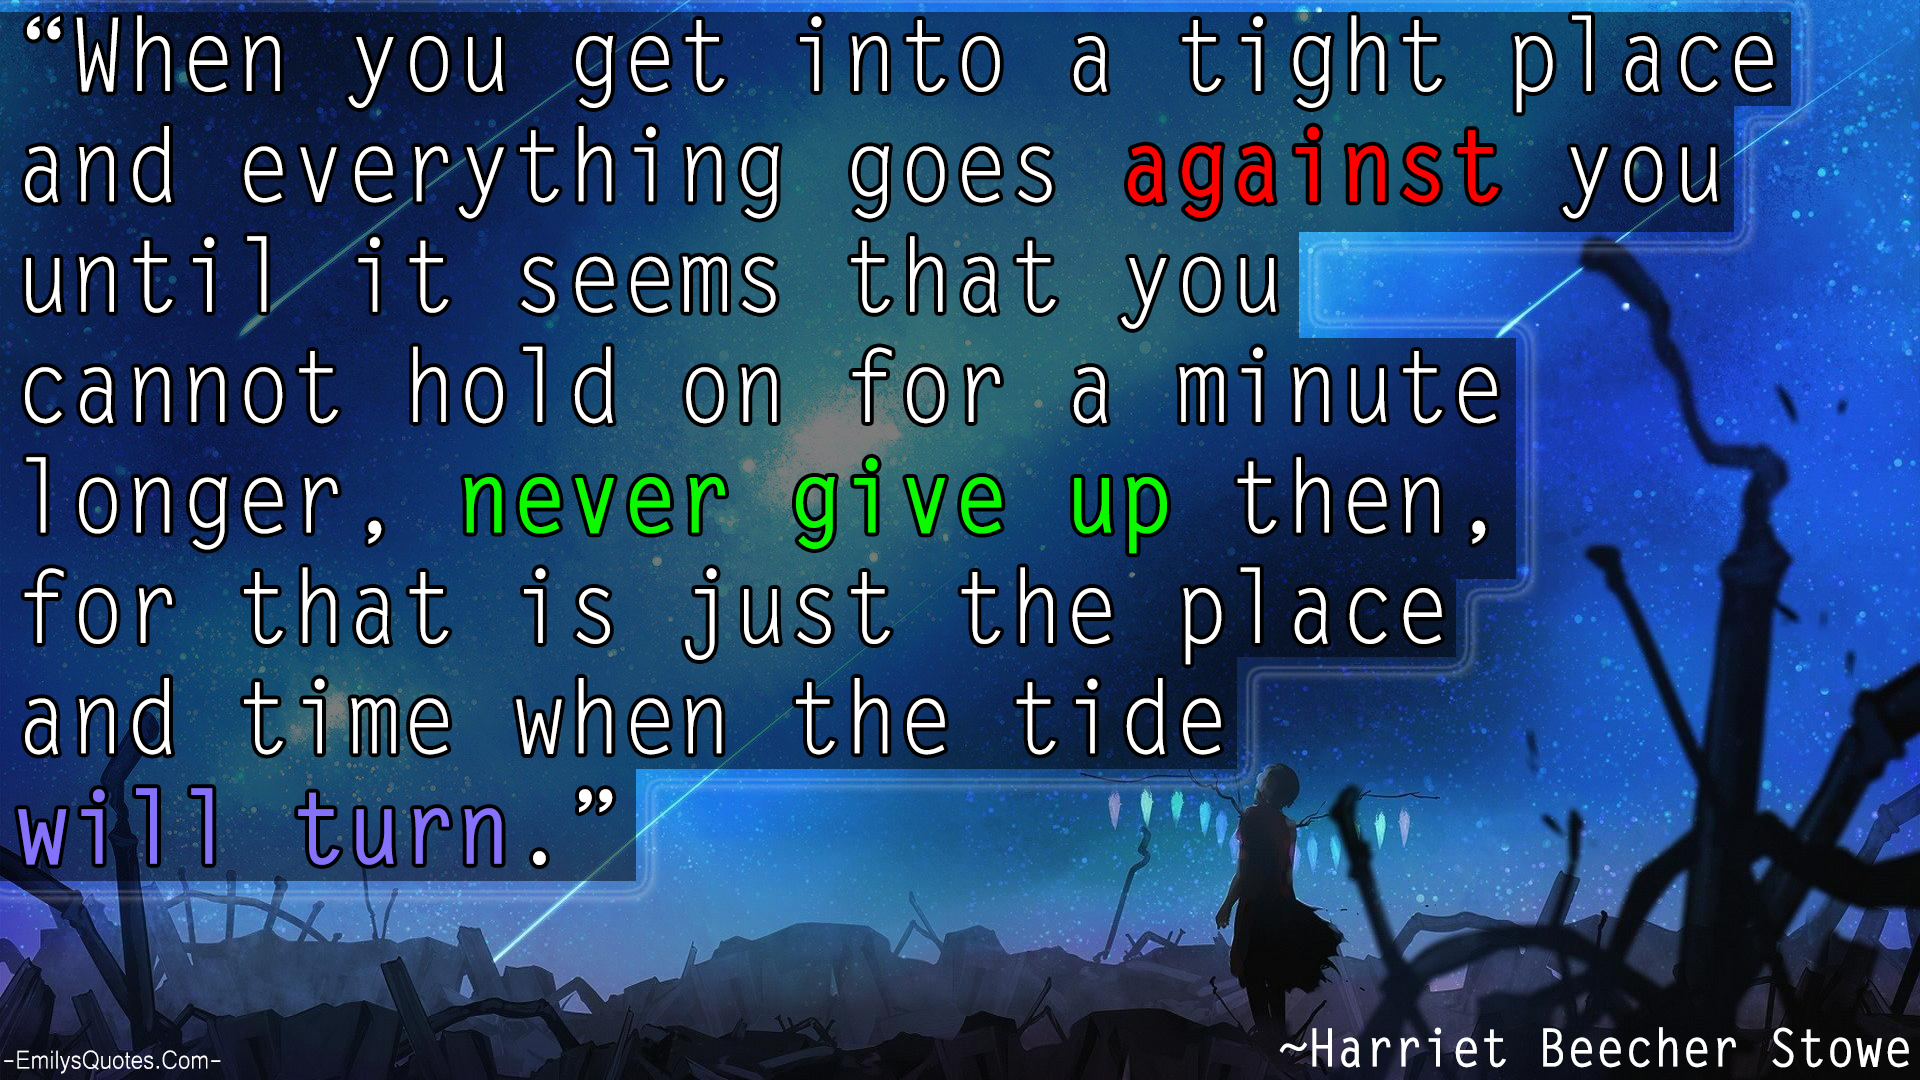 EmilysQuotes.Com - against you, never give up, time, struggle, pain, change, inspirational, encouraging, Harriet Beecher Stowe